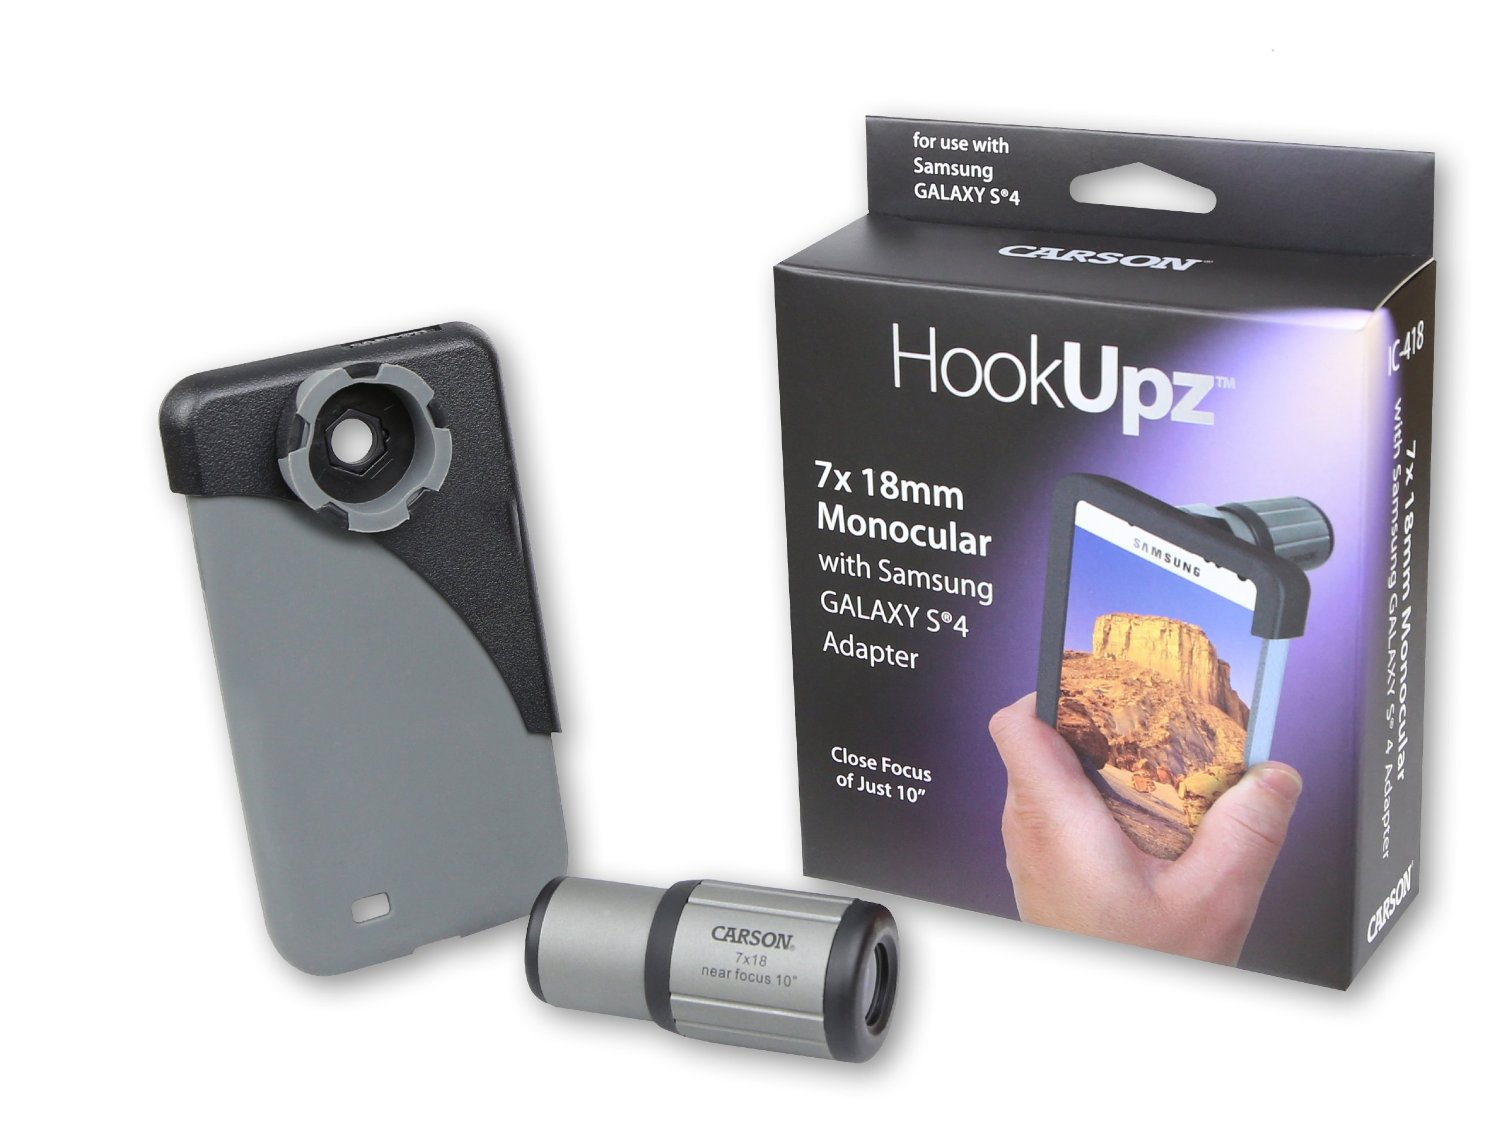 Carson HookUpz iPhone 4/4S/5/5S/SE, iPhone 6/6S, iPhone 6 Plus/6S Plus or Samsung Galaxy S4 Digiscoping Adapters with Close Focus 7x18mm Monocular (IC-518, IC-618, IC-618P, IC-418)